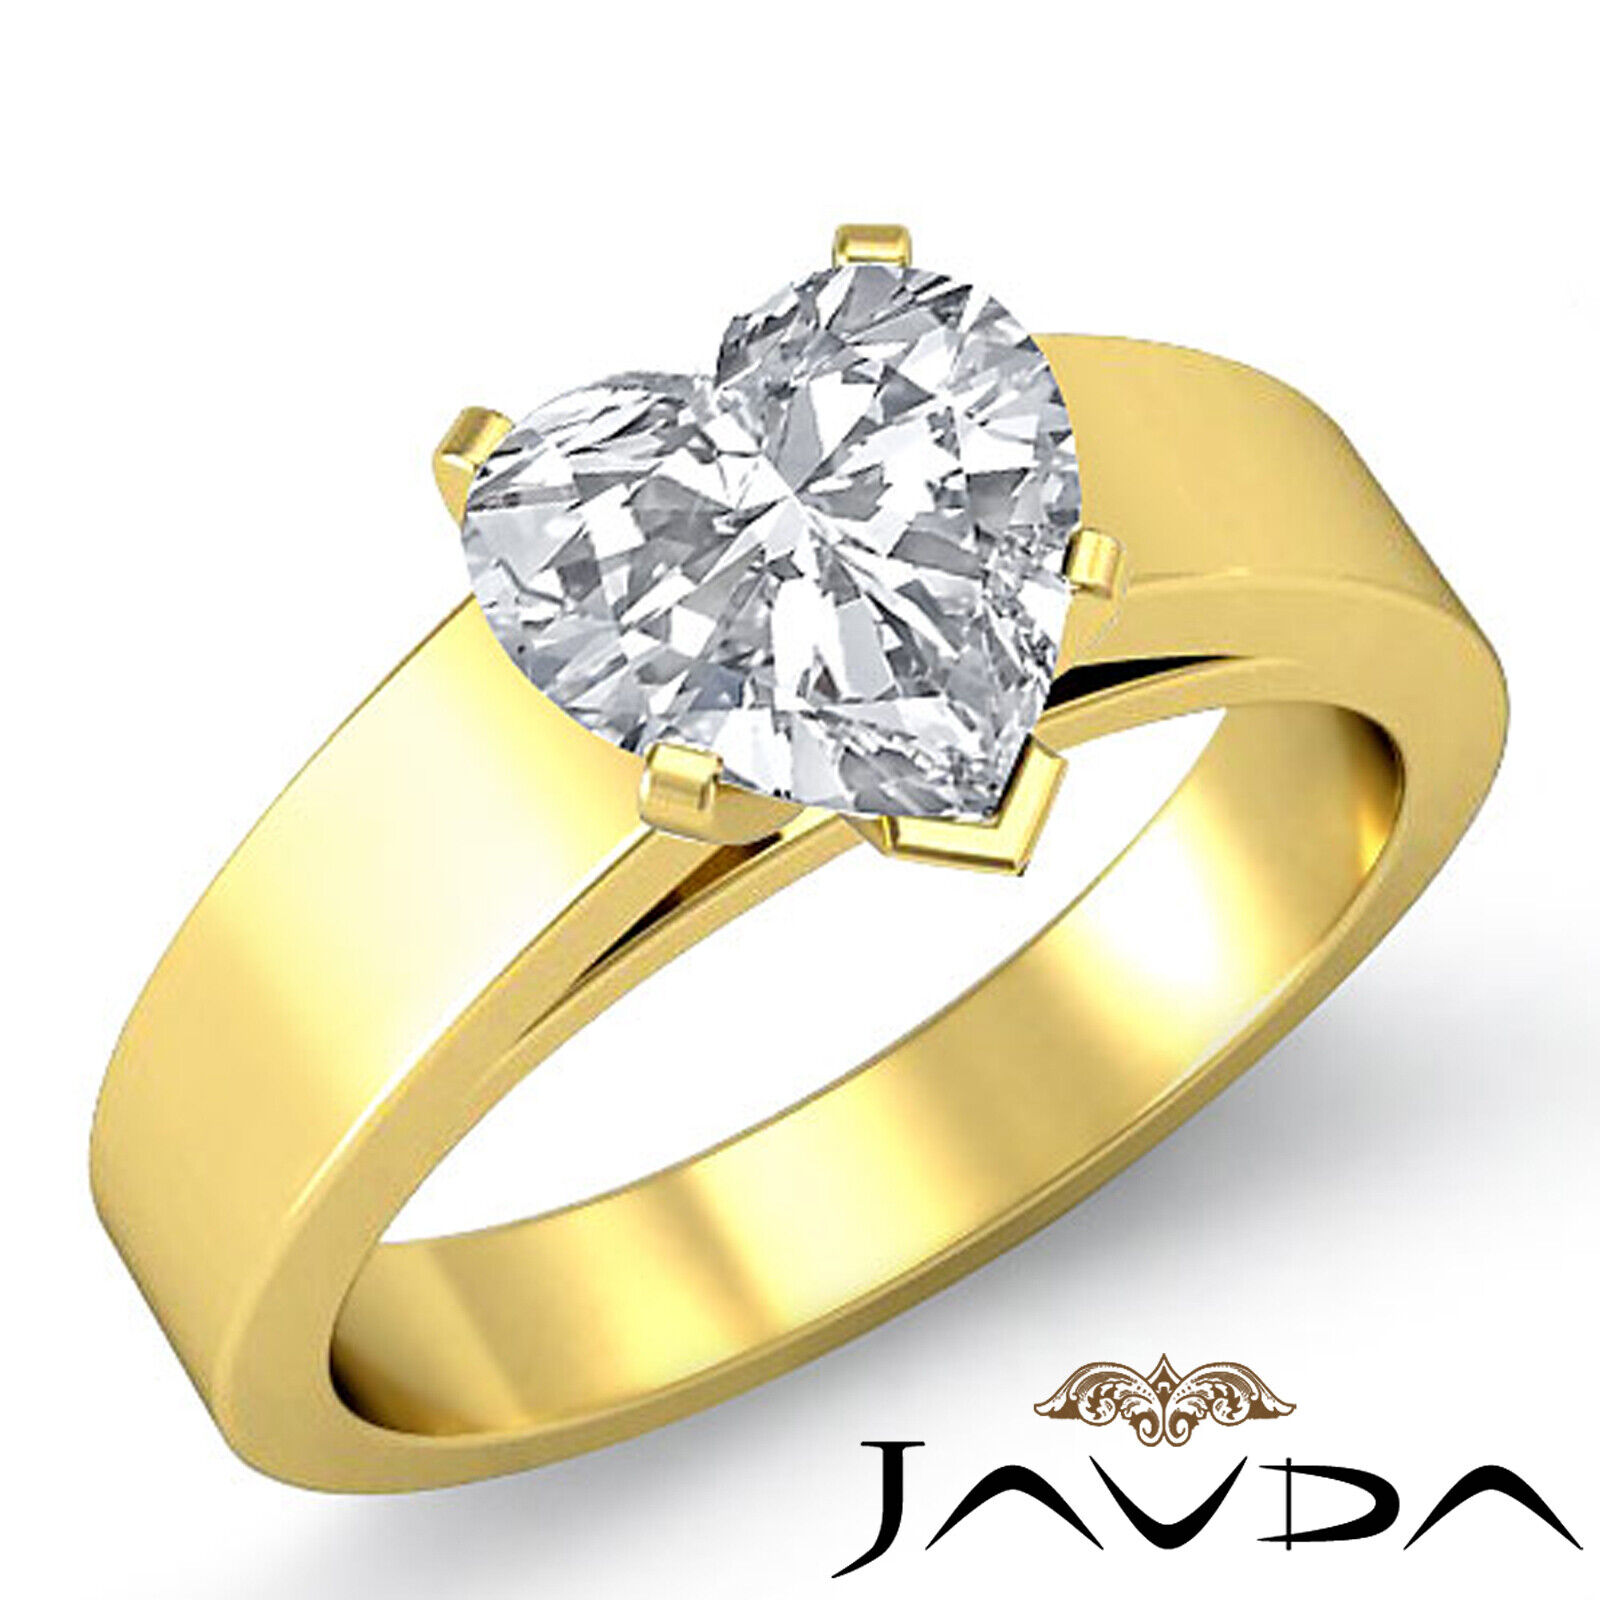 Heart Diamond Cathedral Engagement Solitaire Gold 5.5mm Ring GIA E VS2 0.50 ct. 1